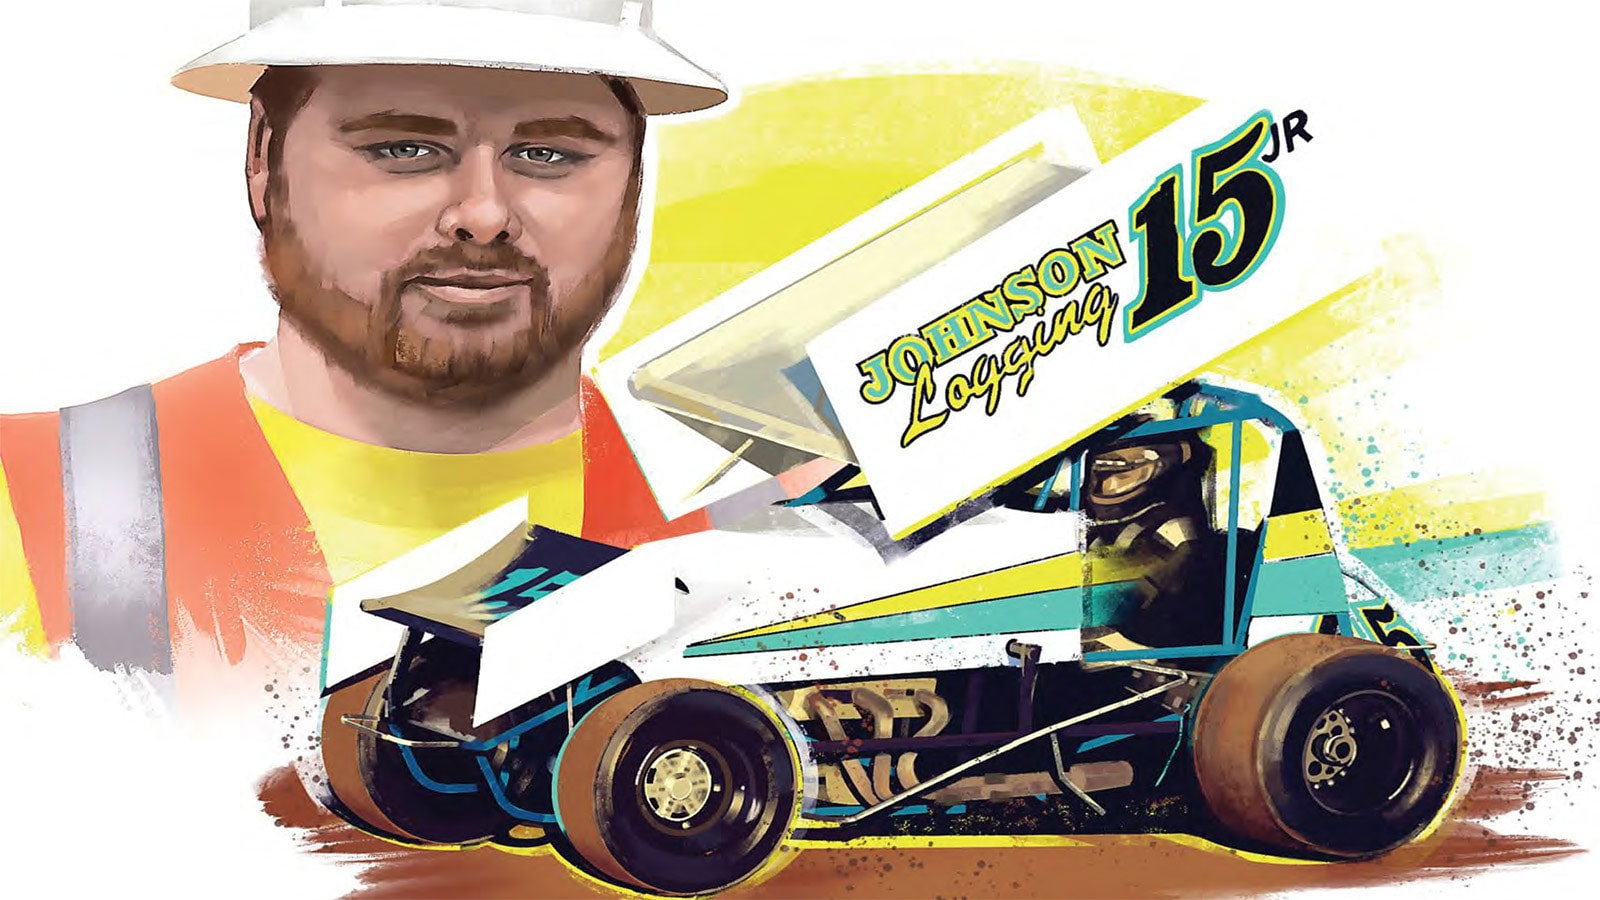 An artistic rendering of Thomas Johnson and his Johnson Logging sprint car.